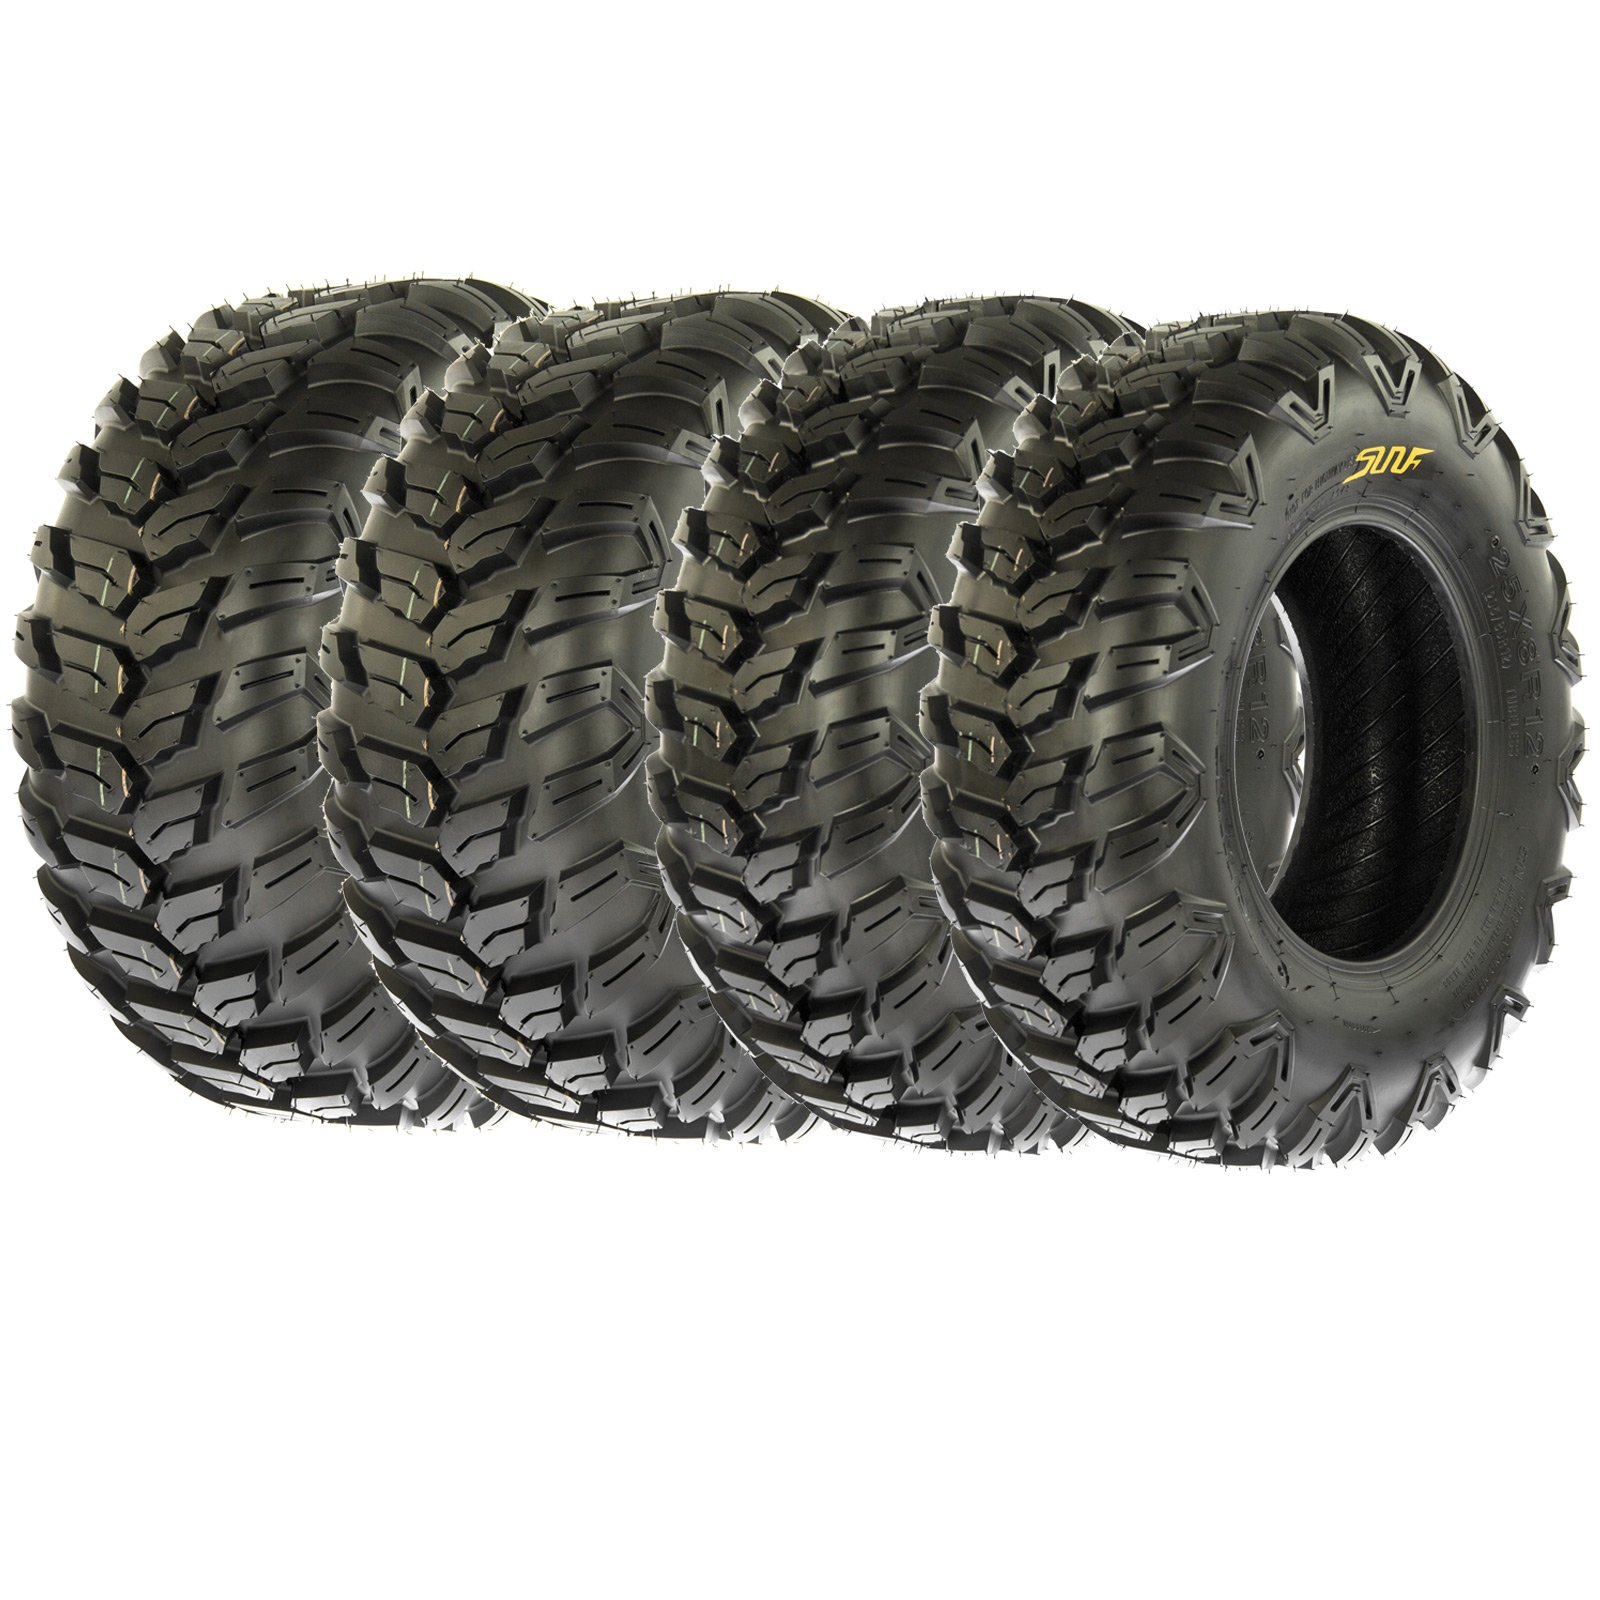 SunF Radial A/T Sport ATV UTV Tires 26x9R-14 & 26x11R-14 6 PR A043 (Full set of 4, Front & Rear) by SunF